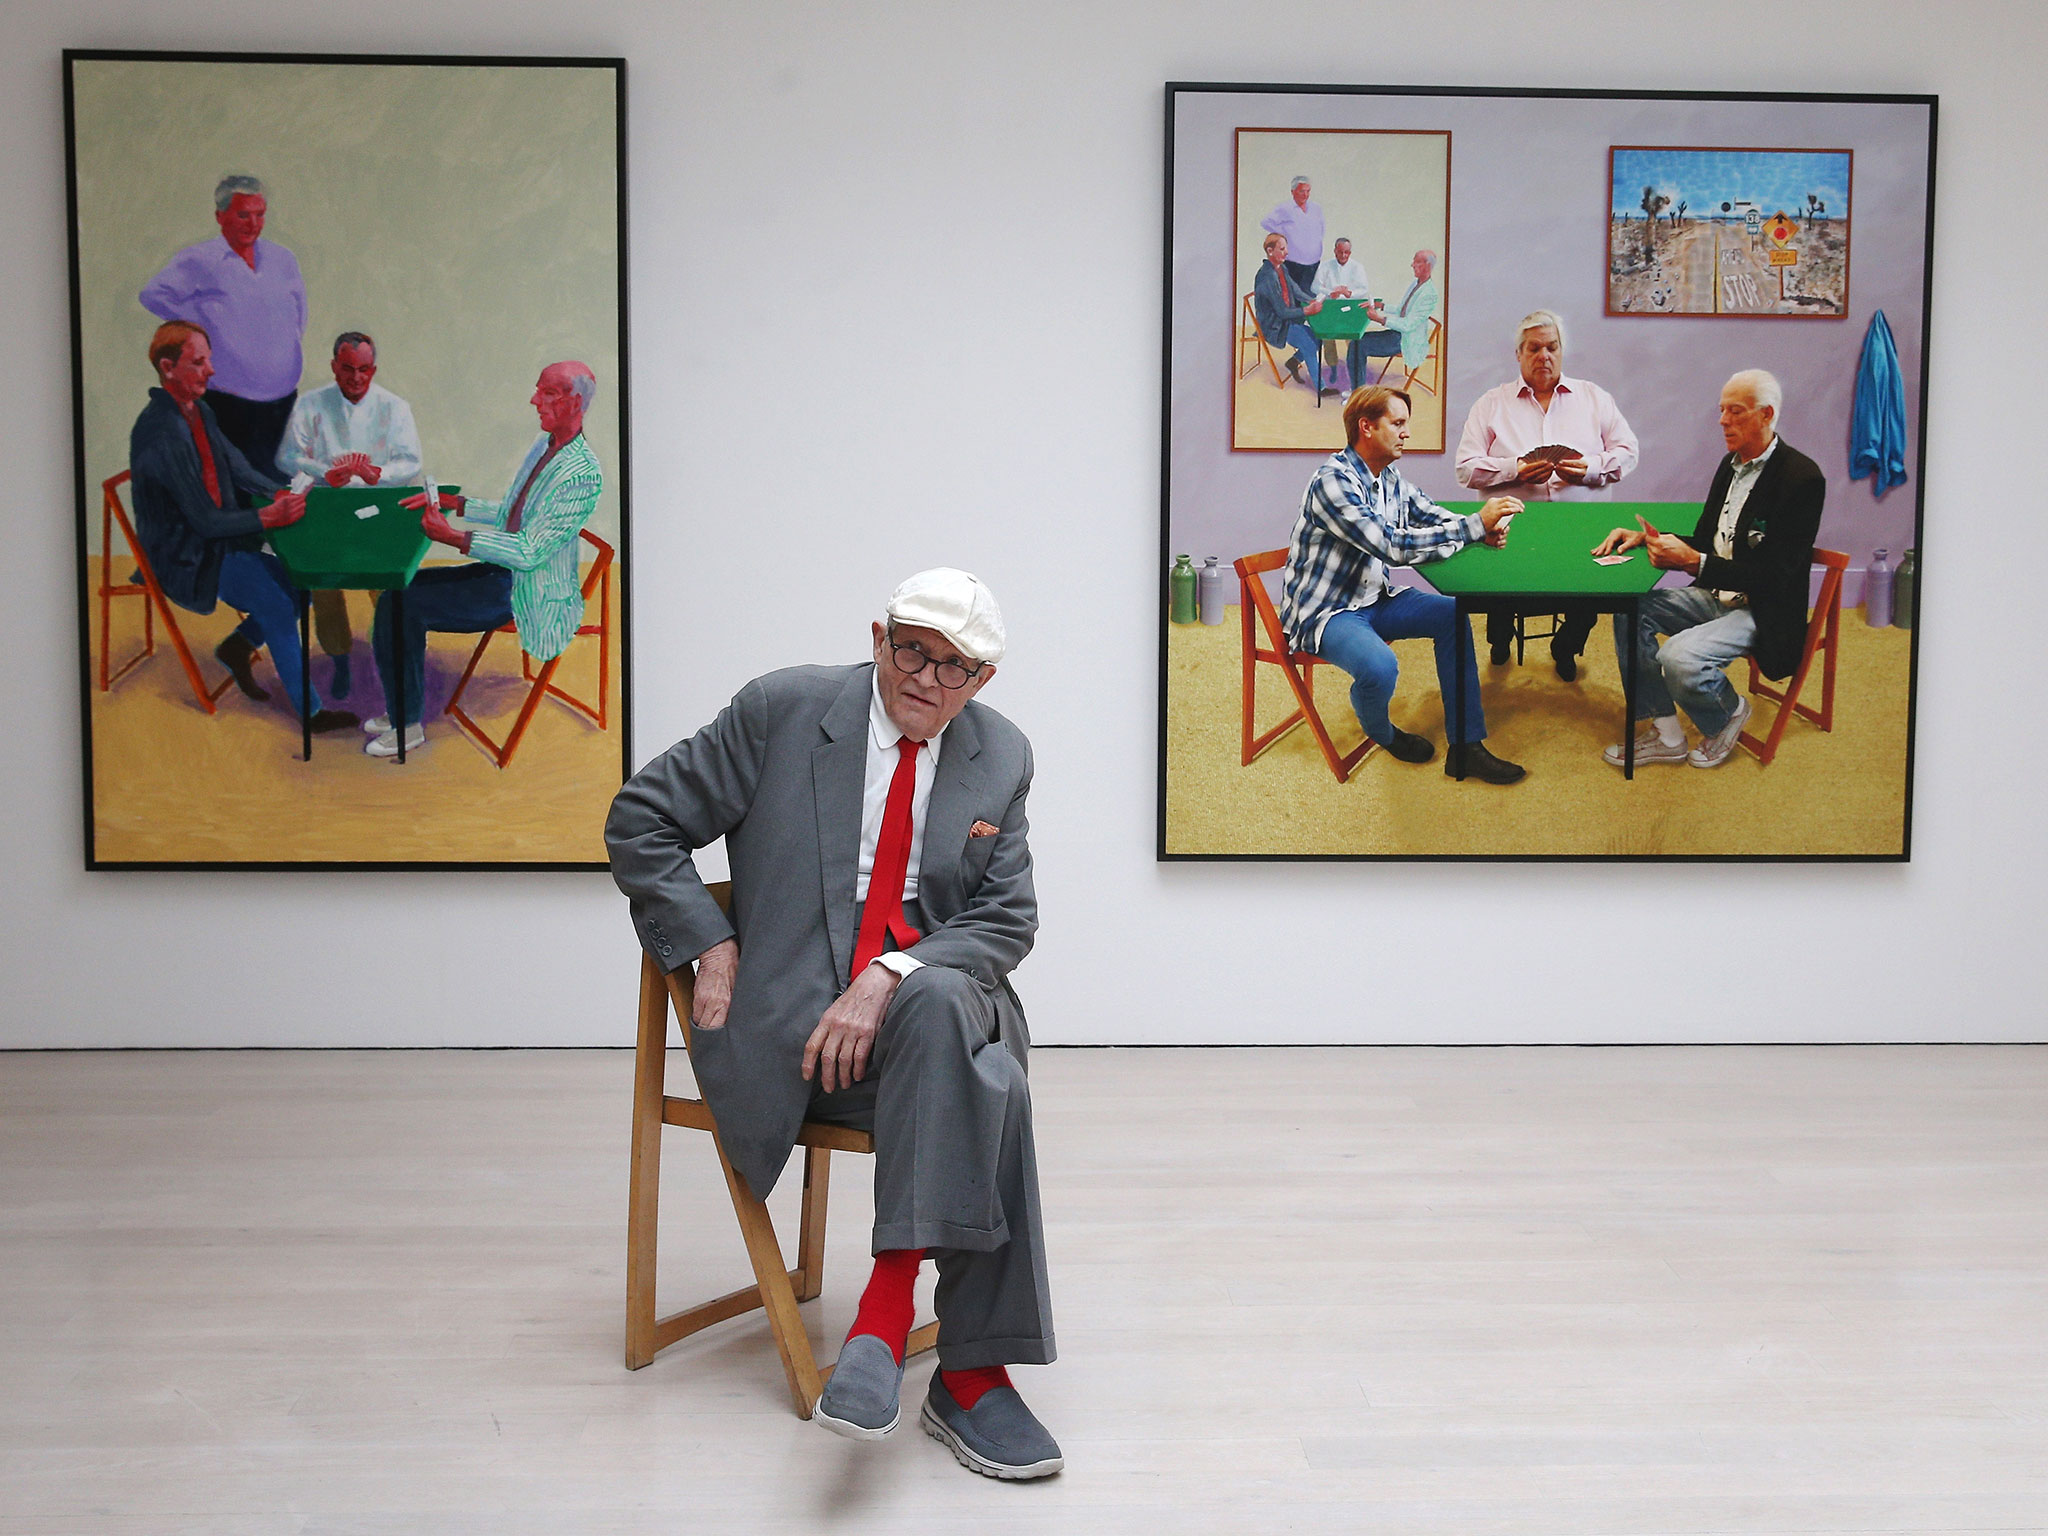 David Hockney at The Tate Modern, London.jpg